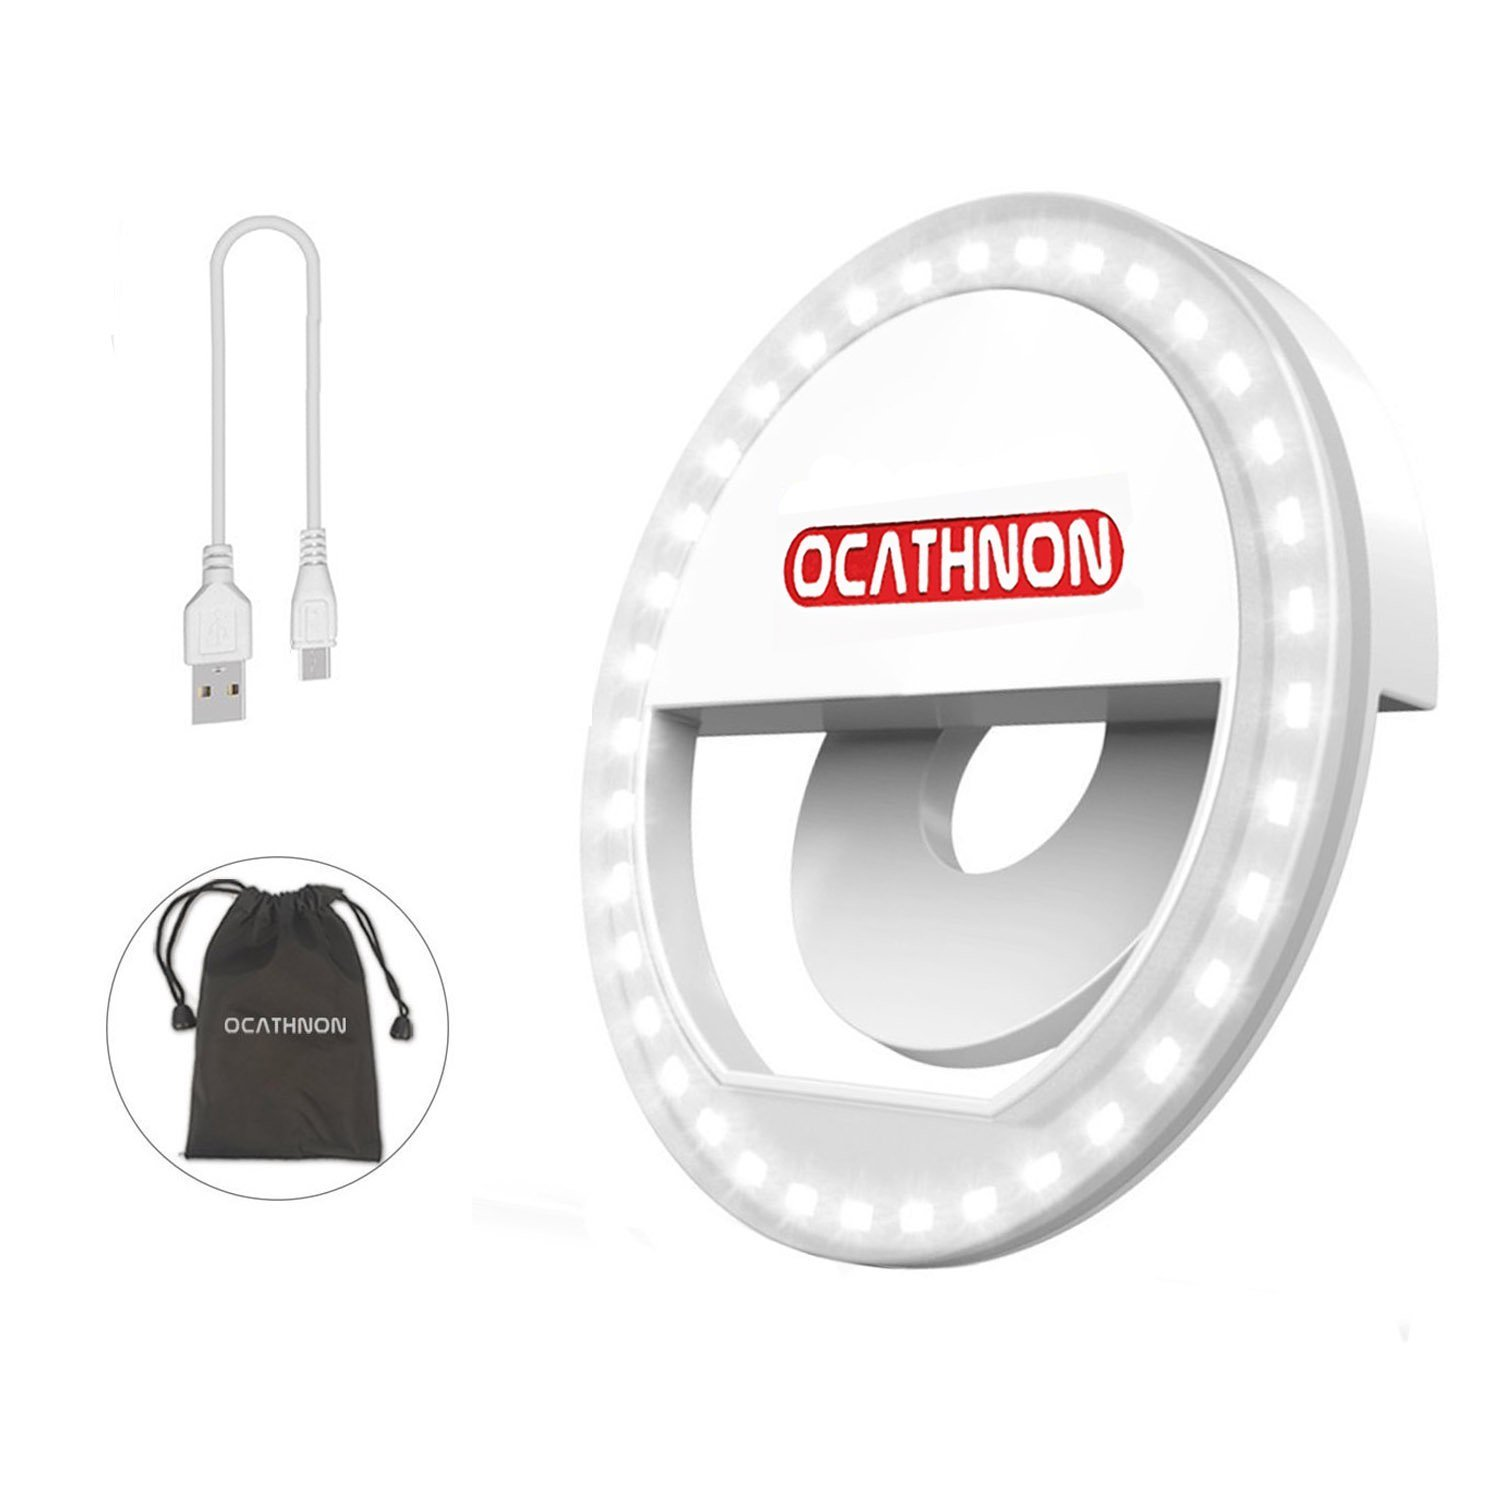 Selfie Ring Light Support to Take Selfie & Charge to Phone Compatible with iPhone 7 Plus/7/iPhone 6s/6/Samsung Galaxy S7/S6 Edge/S6 KuLaShi QKSP00289A